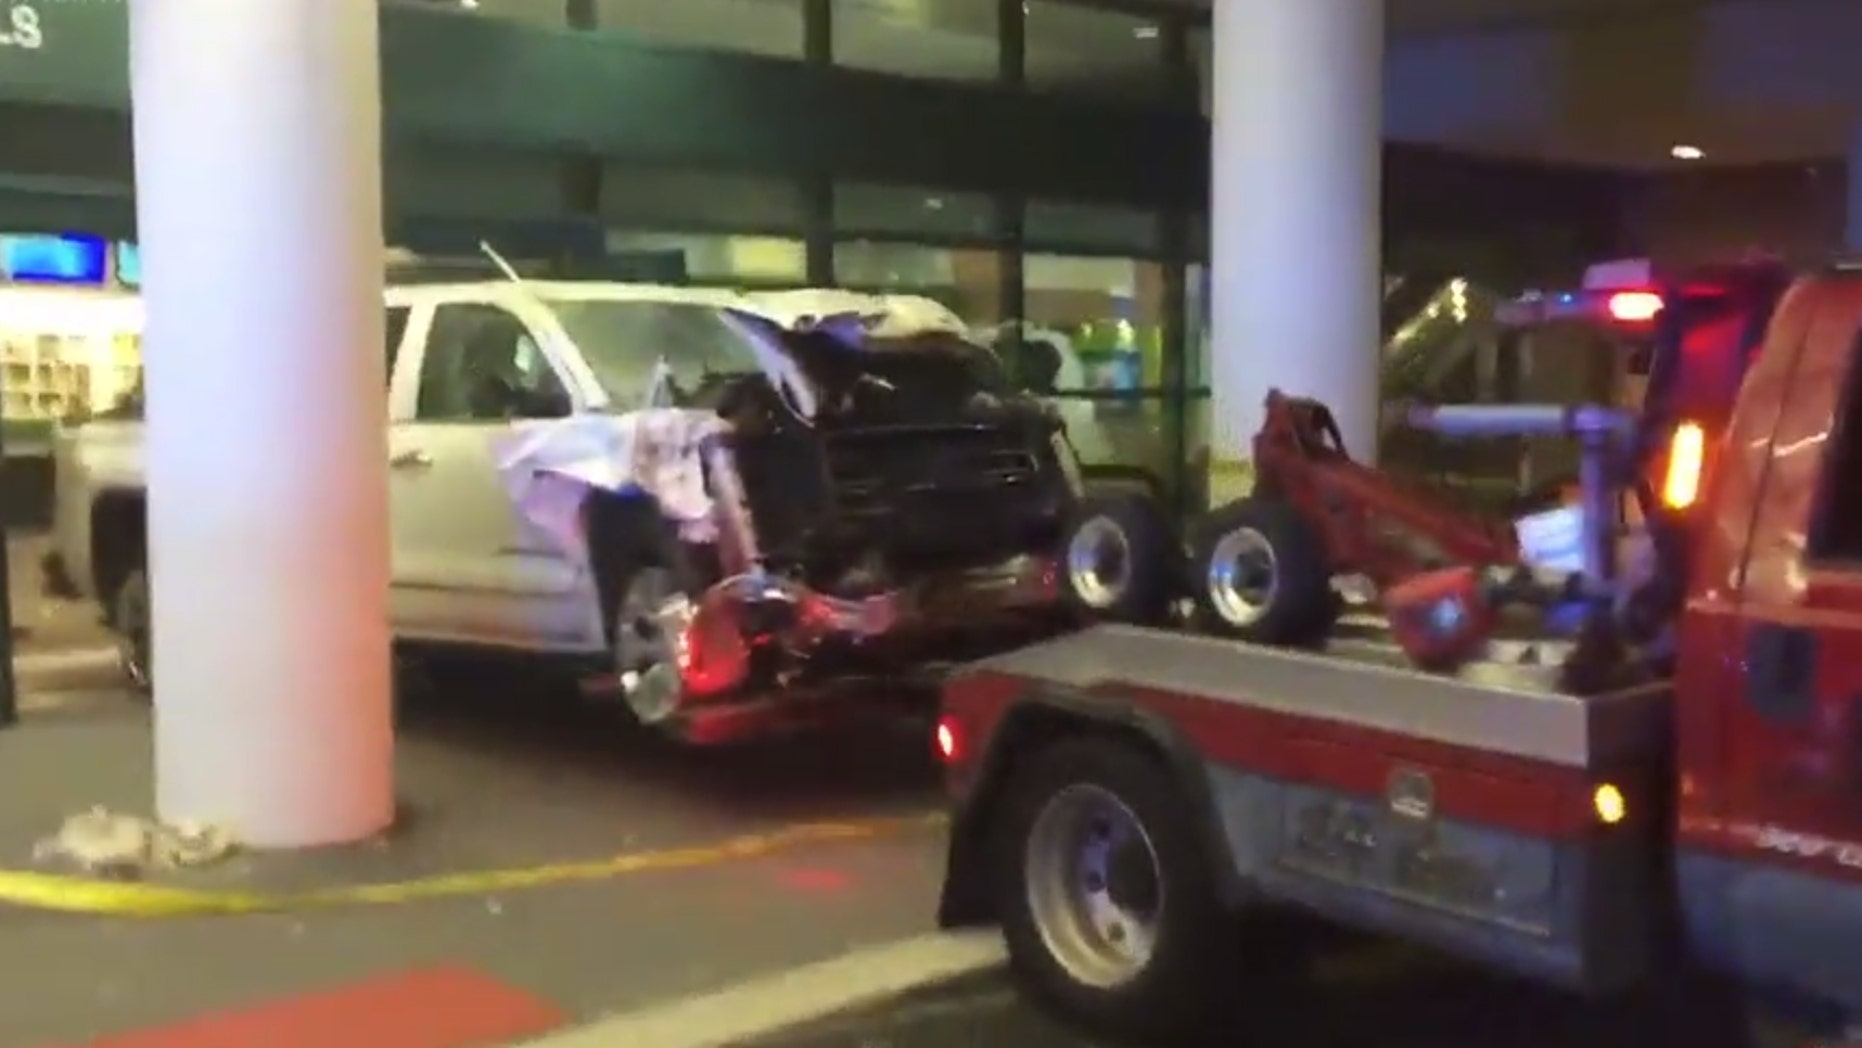 The airport president has since said the airport will be operational in time for any scheduled flights, minus a single baggage belt that the truck damaged during the crash. (Van Williams via WTVT)